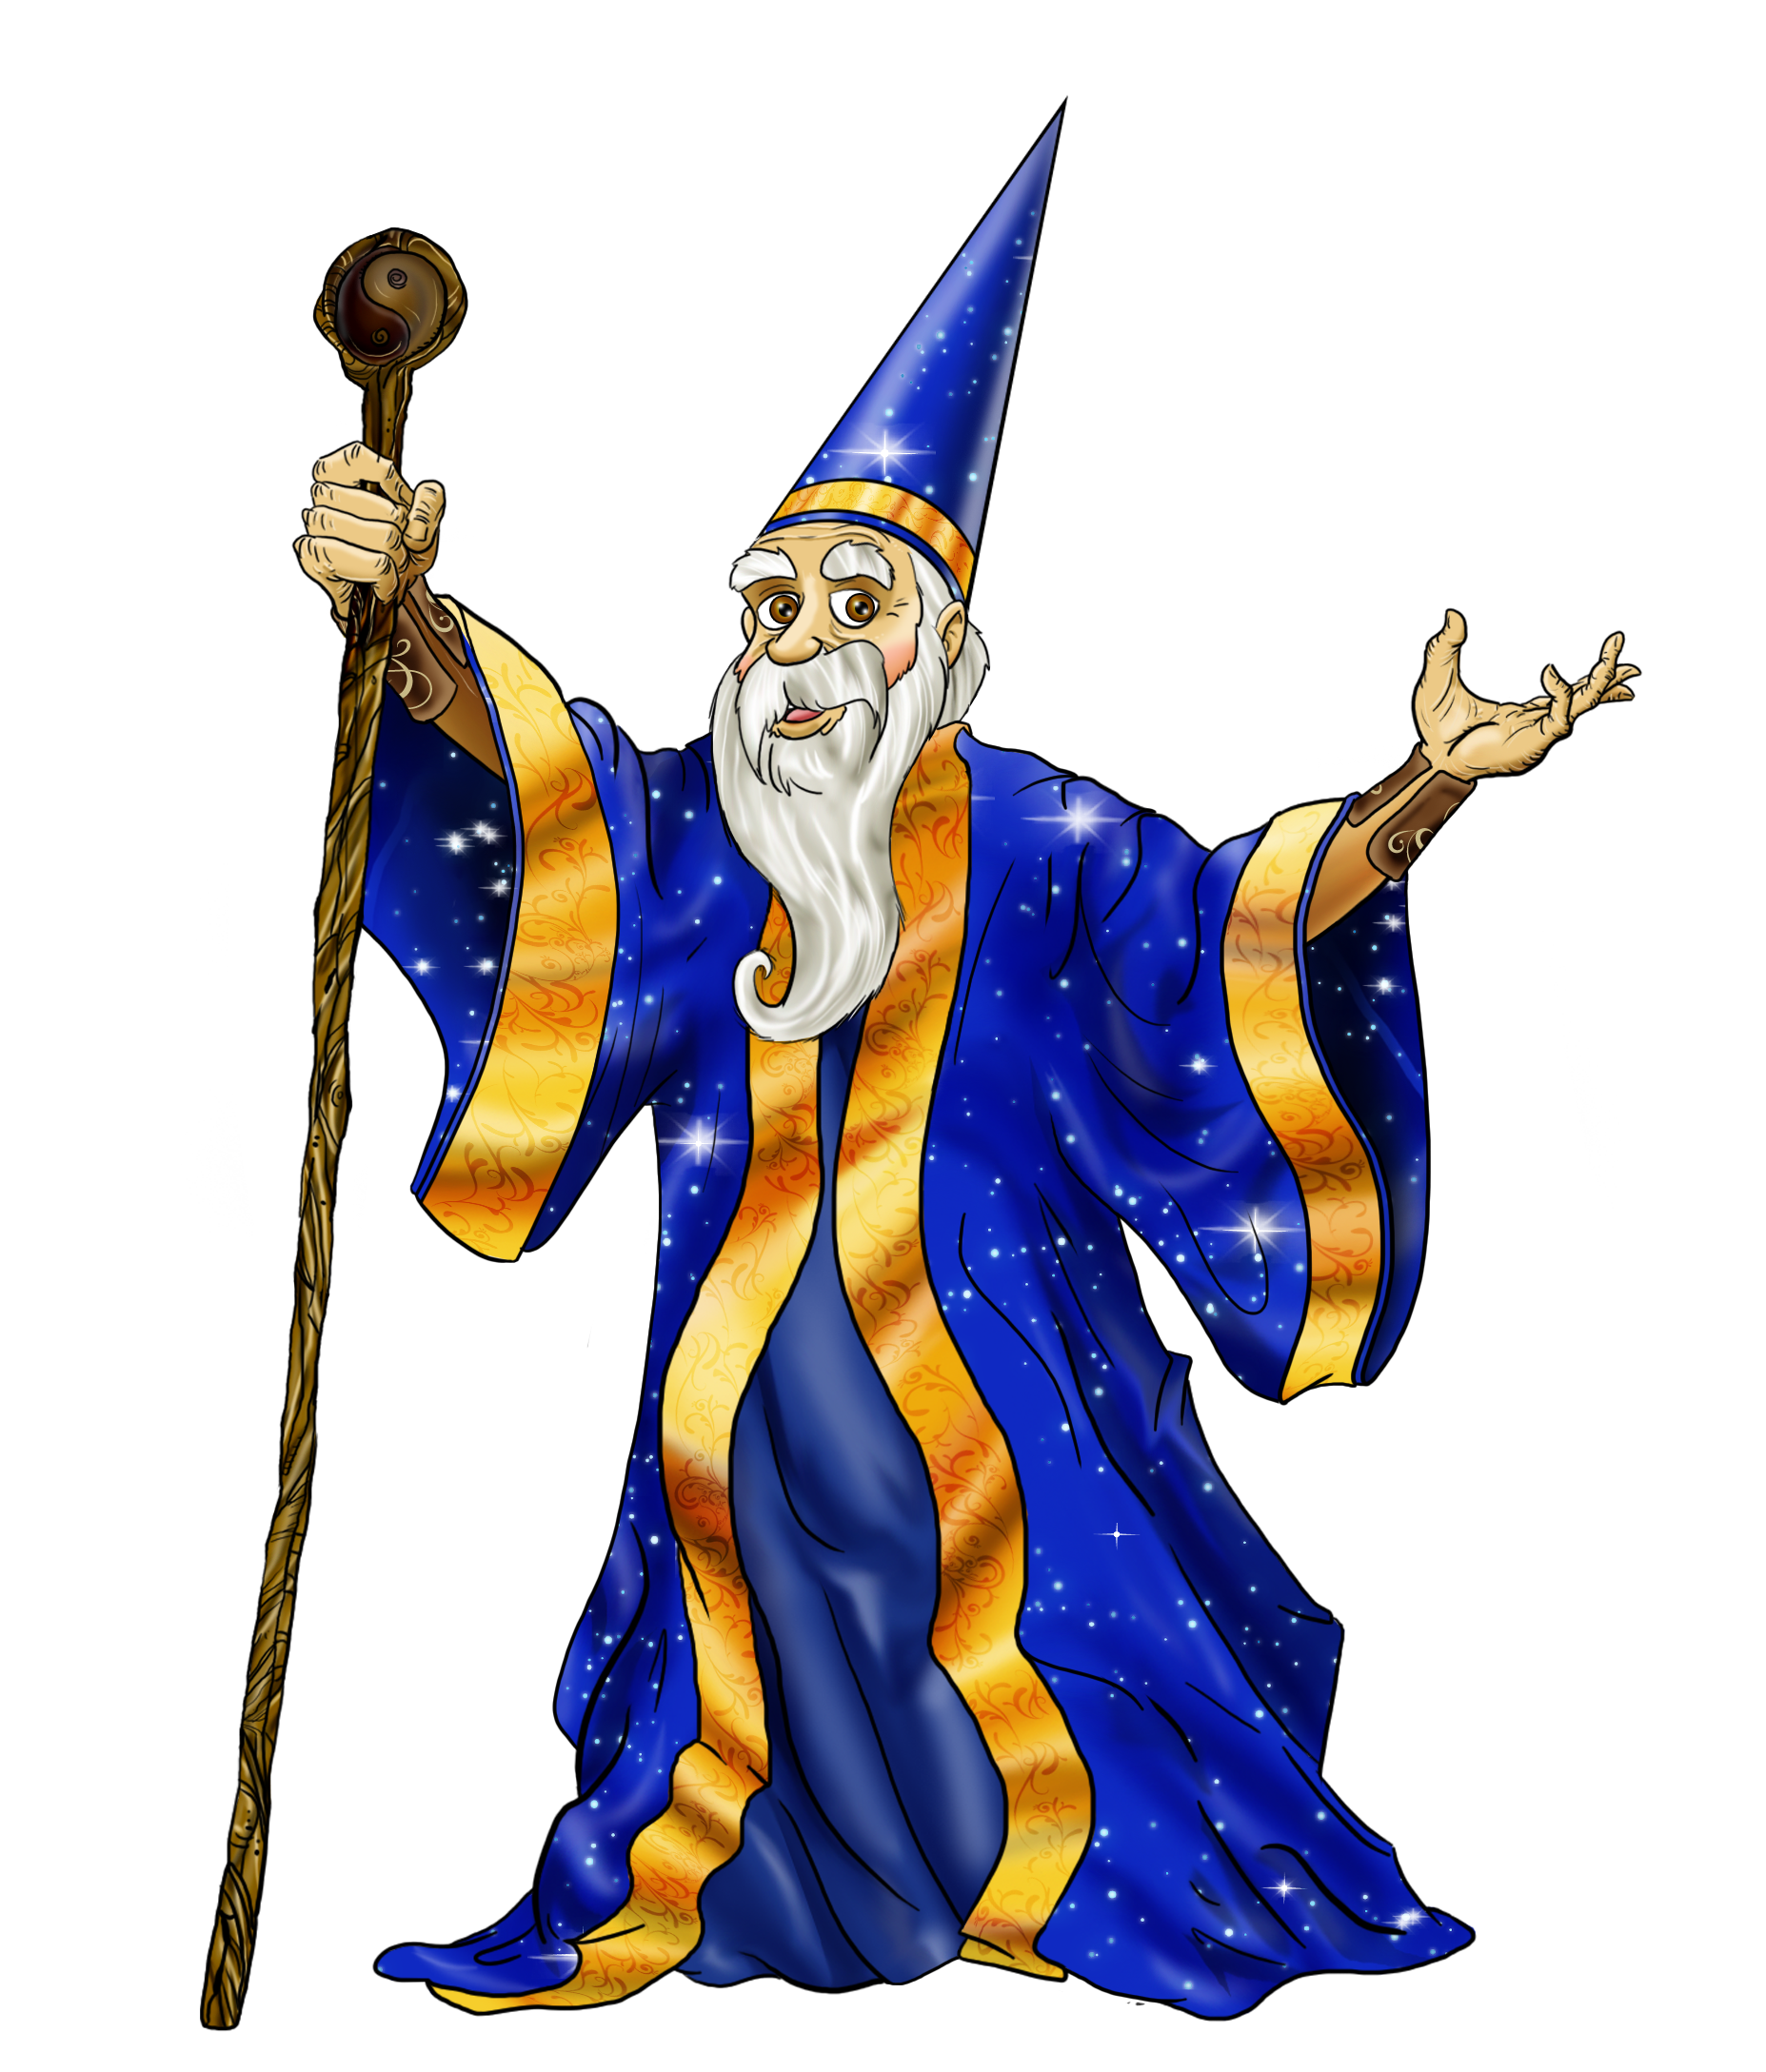 graphic free Fantasy clipart wizard. Png transparent free images